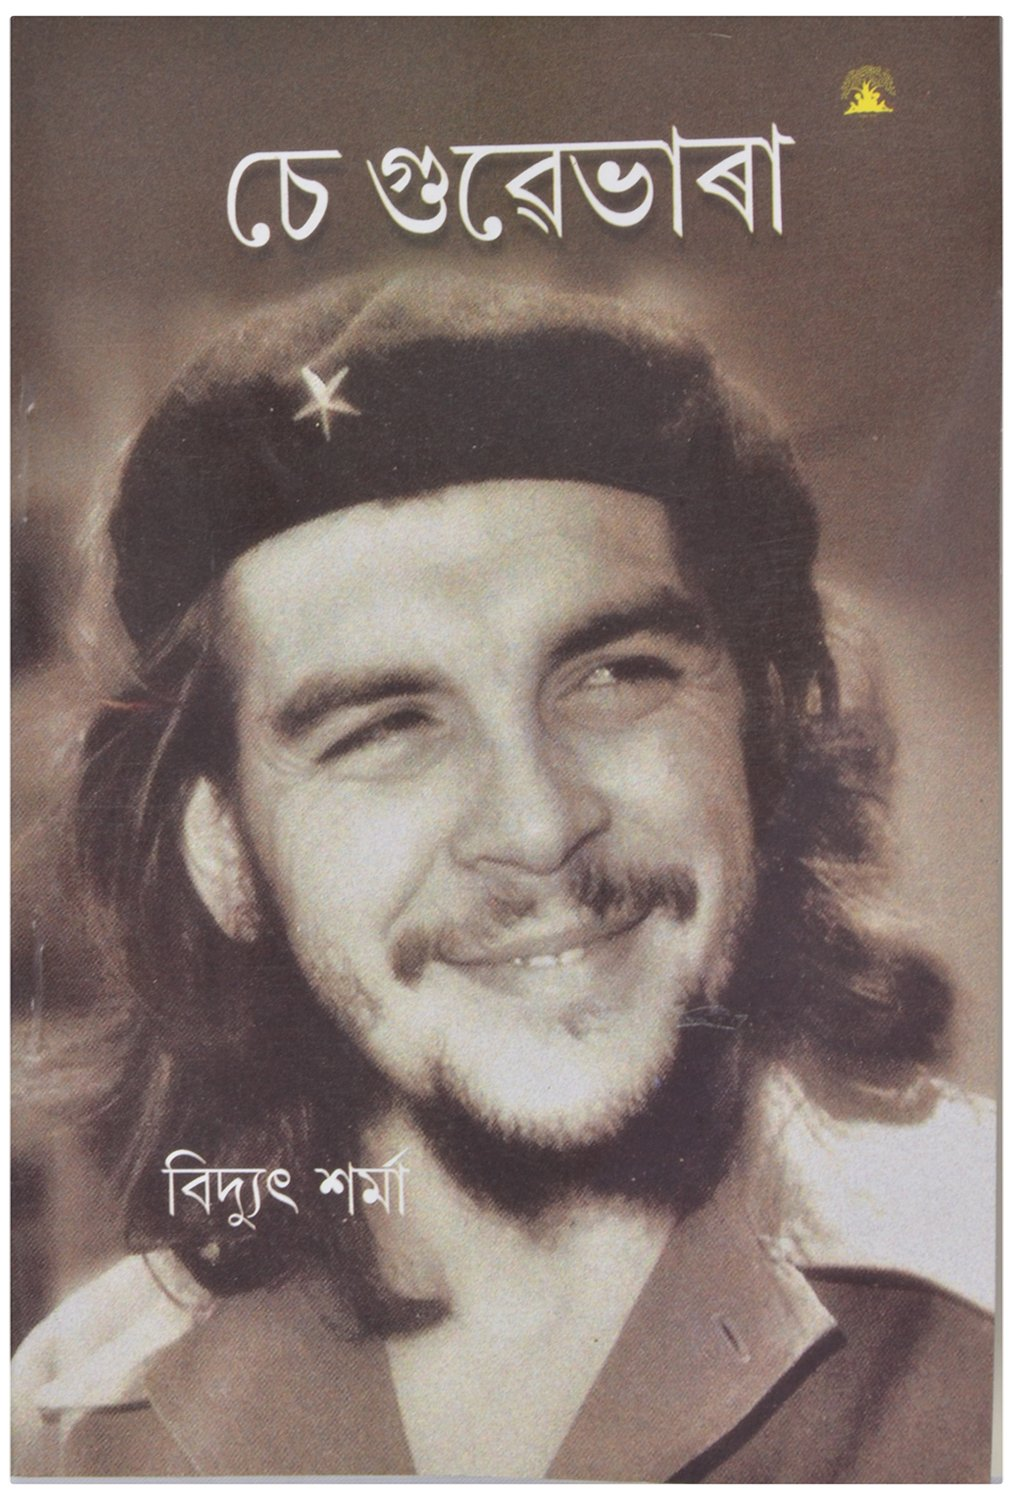 Che Guevara Biography In Hindi Pdf